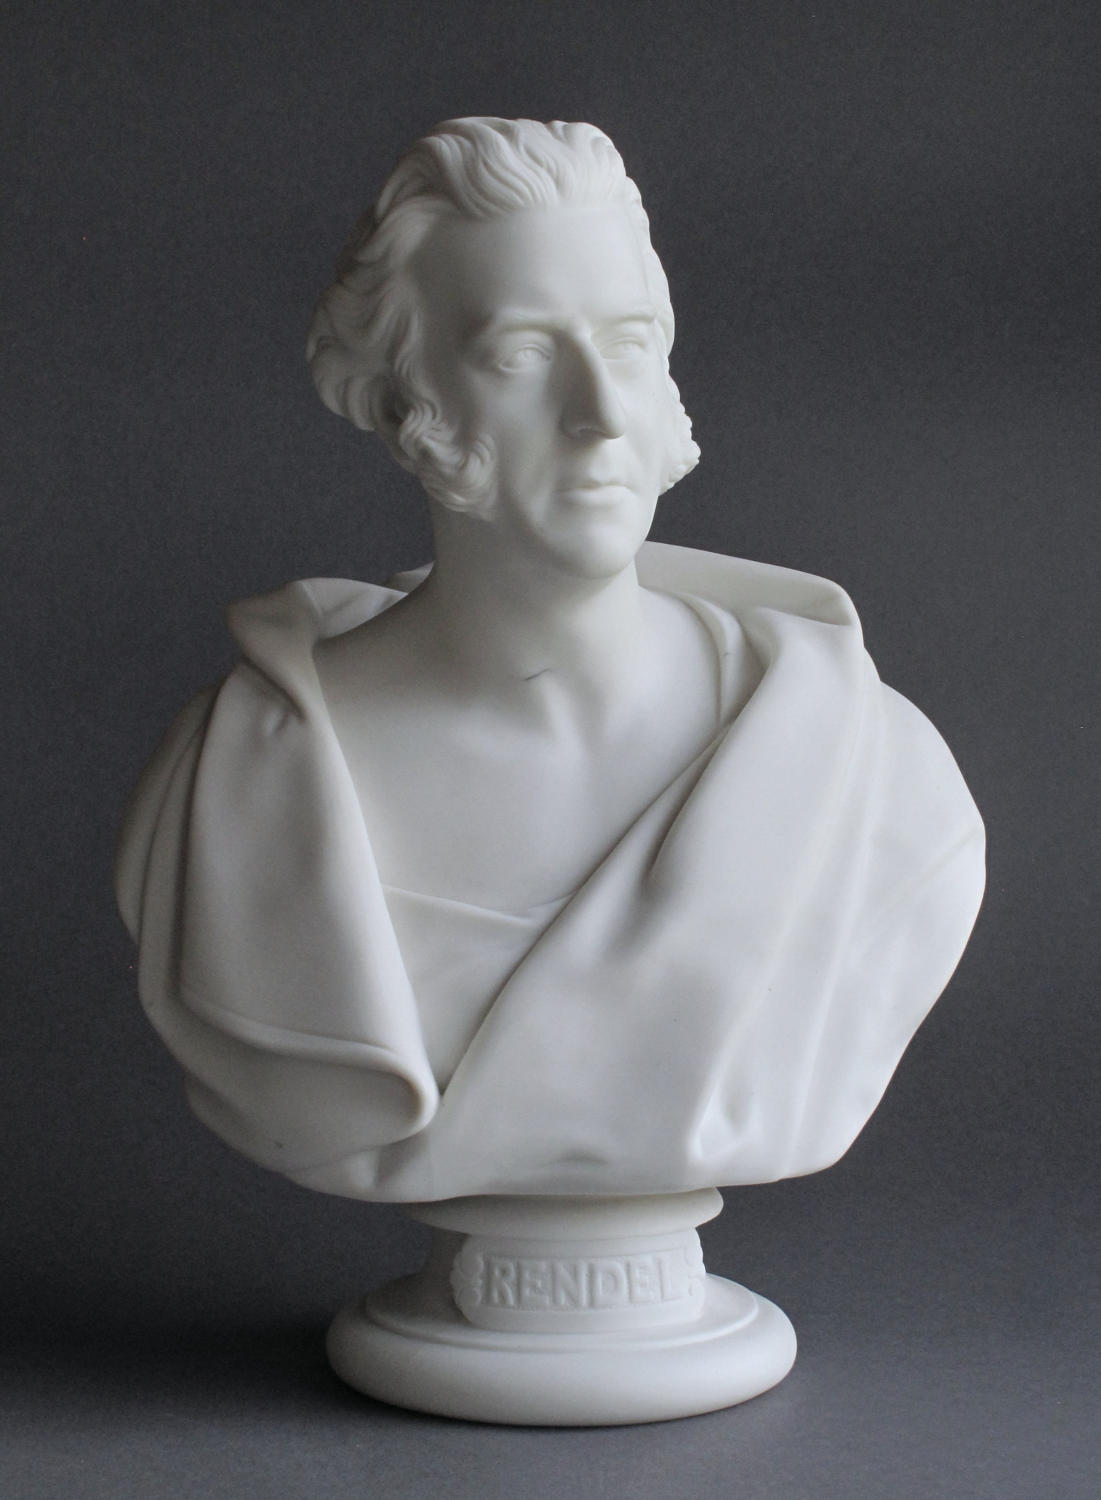 A Minton Parian bust of James Meadows Rendel